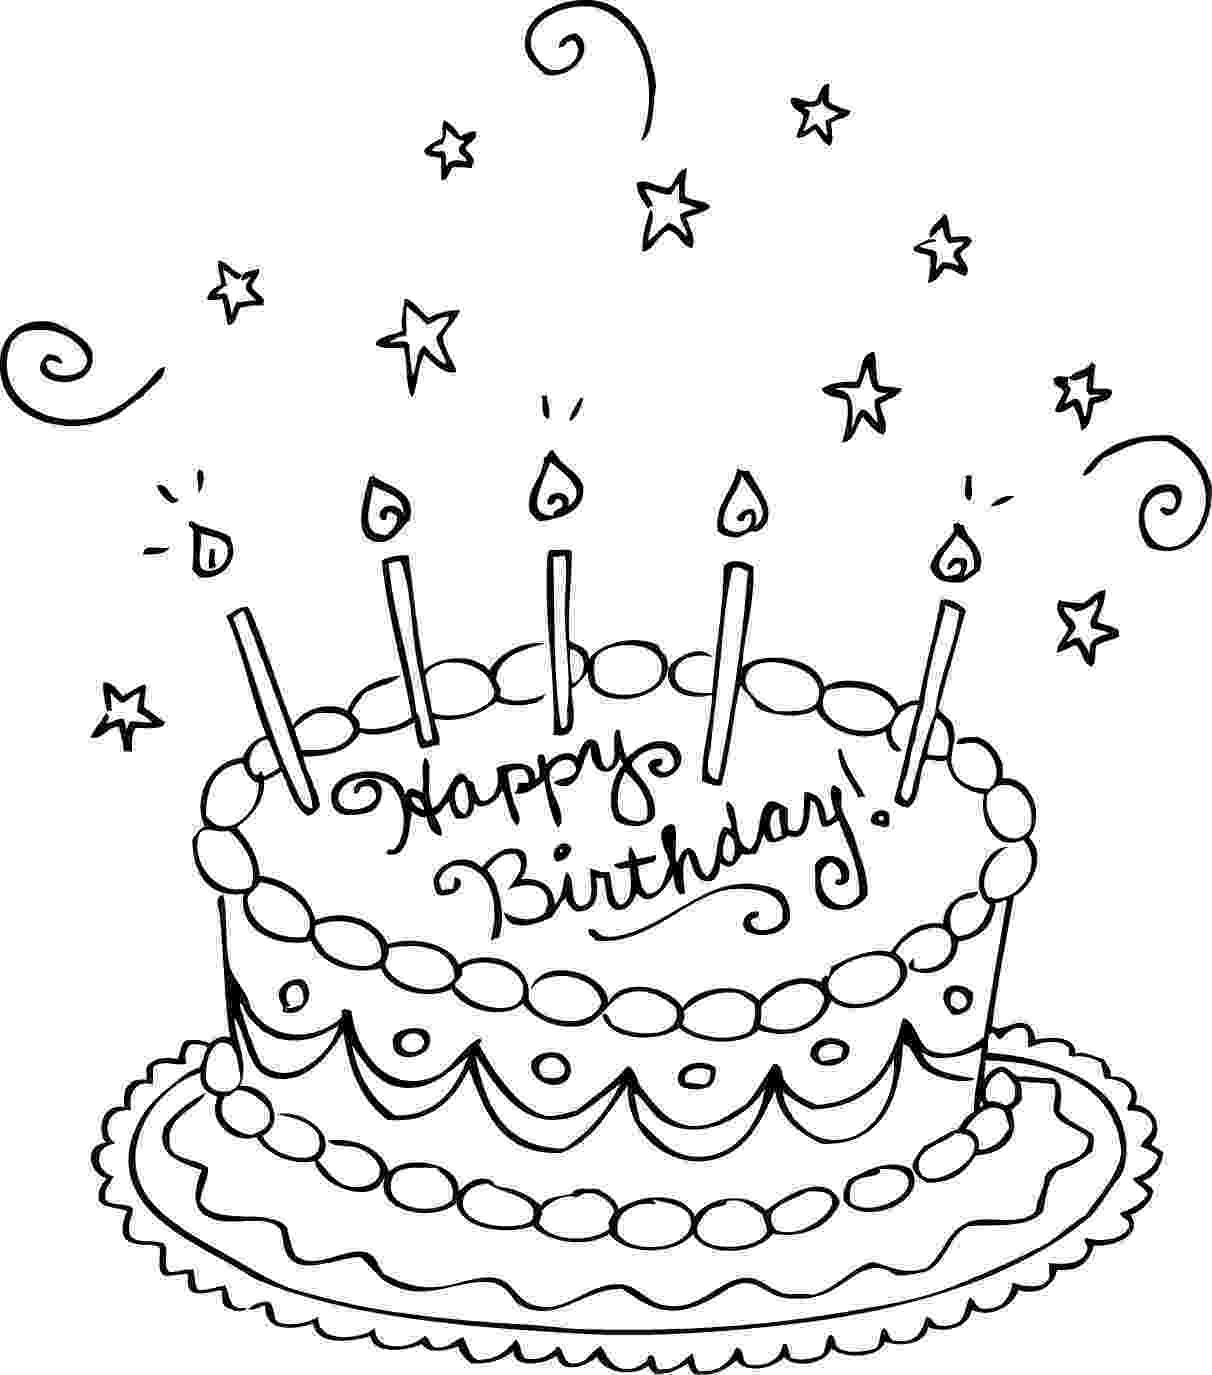 printable birthday cake images free printable birthday cake coloring pages for kids birthday cake printable images